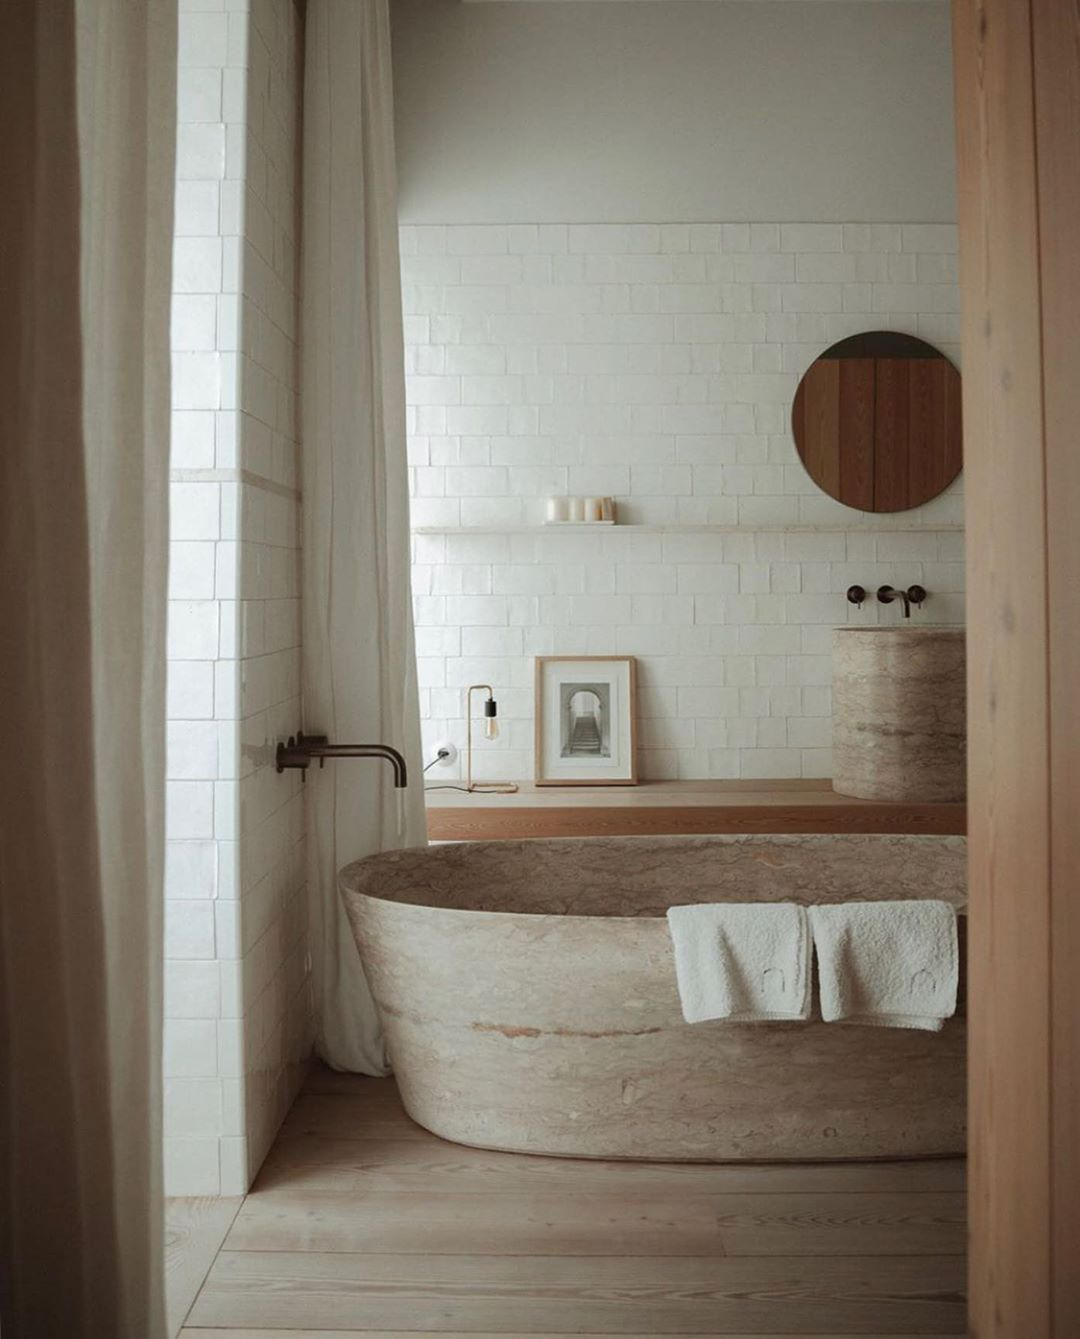 bathroom, brown stone floor tiles, white subway wall tiles, brown stone tub, wooden floating vanity, brown marble round tall sink, round mirror